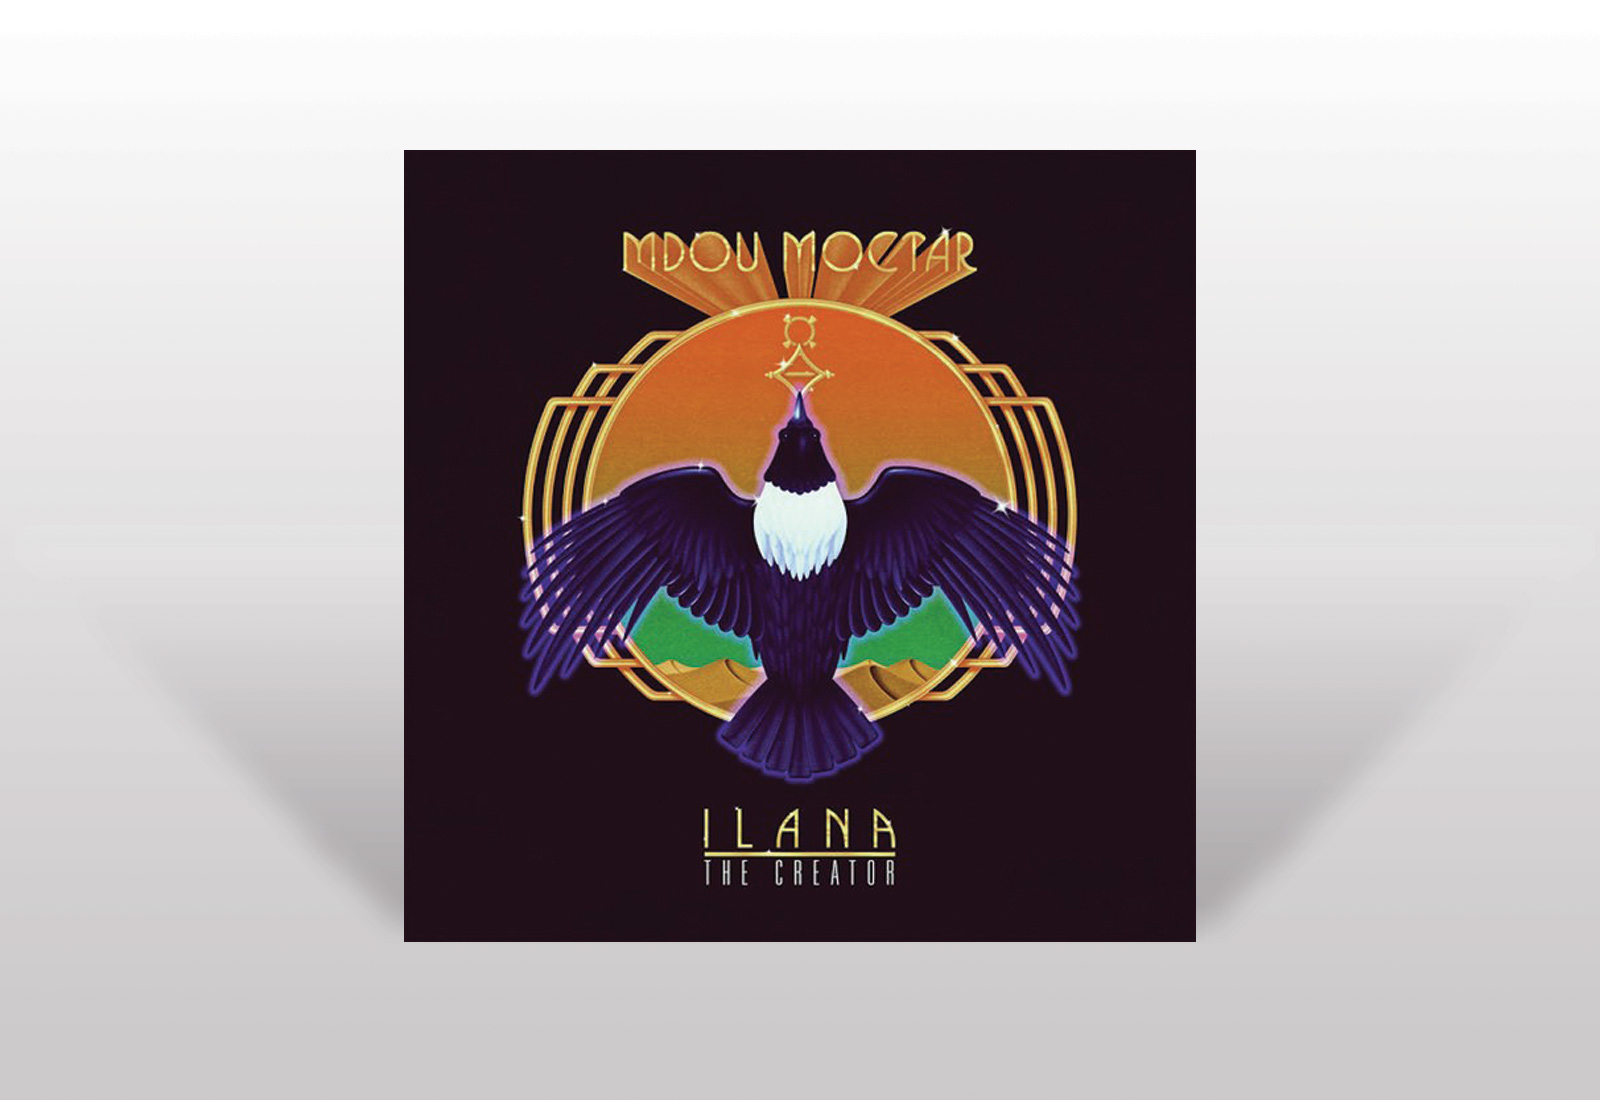 Our Favorite Releases of 2019 - Mdou Moctar